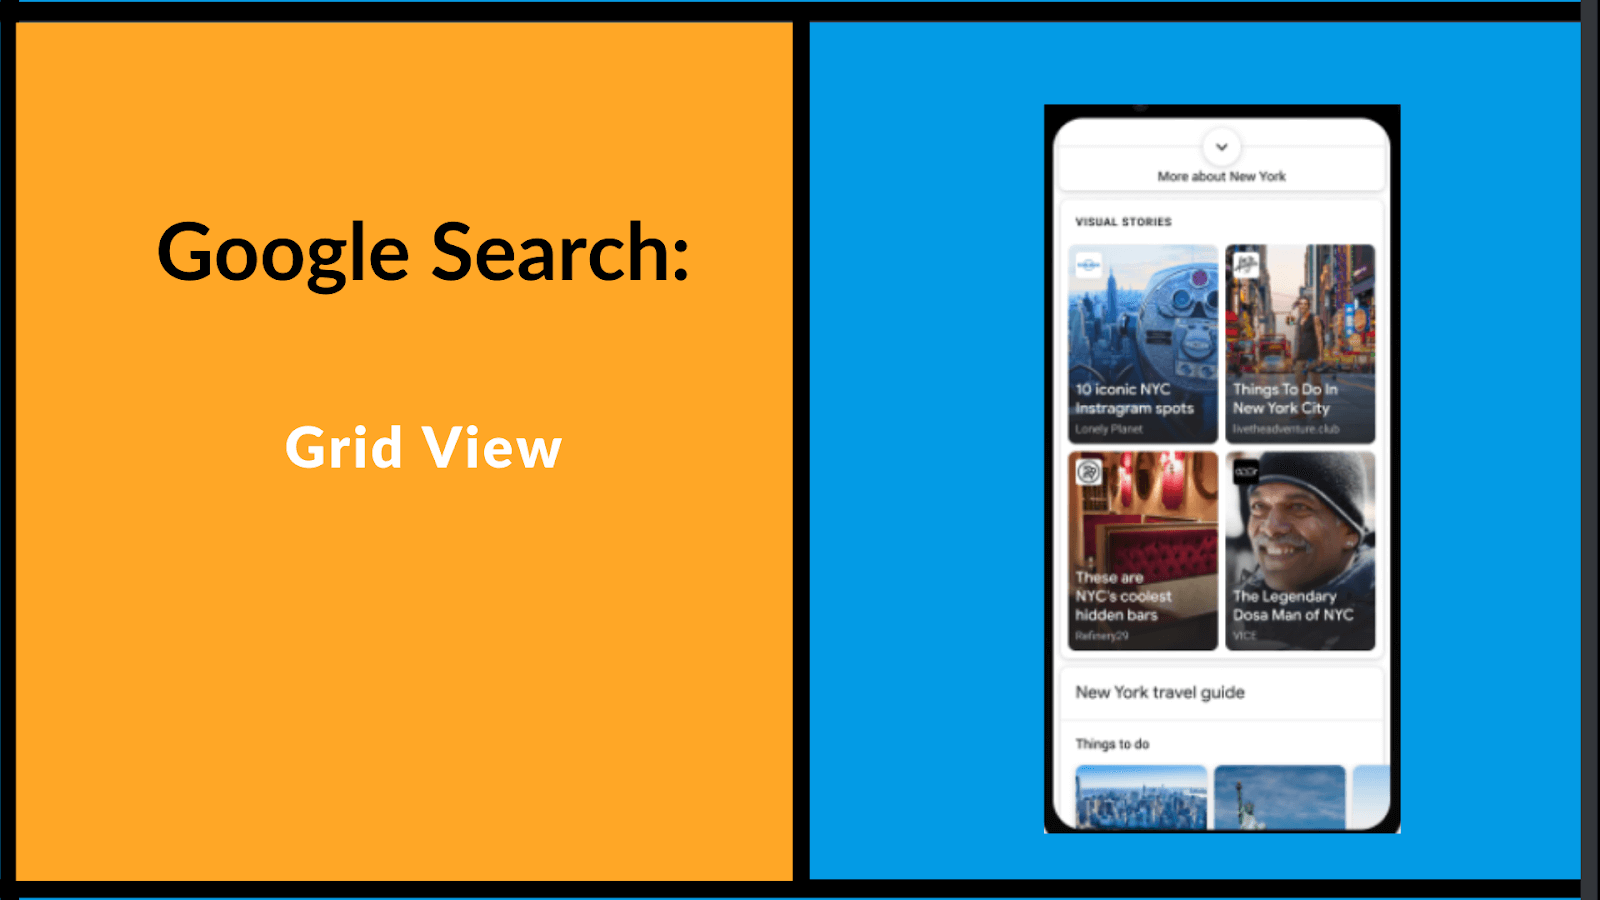 How Google Search looks like in a grid view, example on how it looks